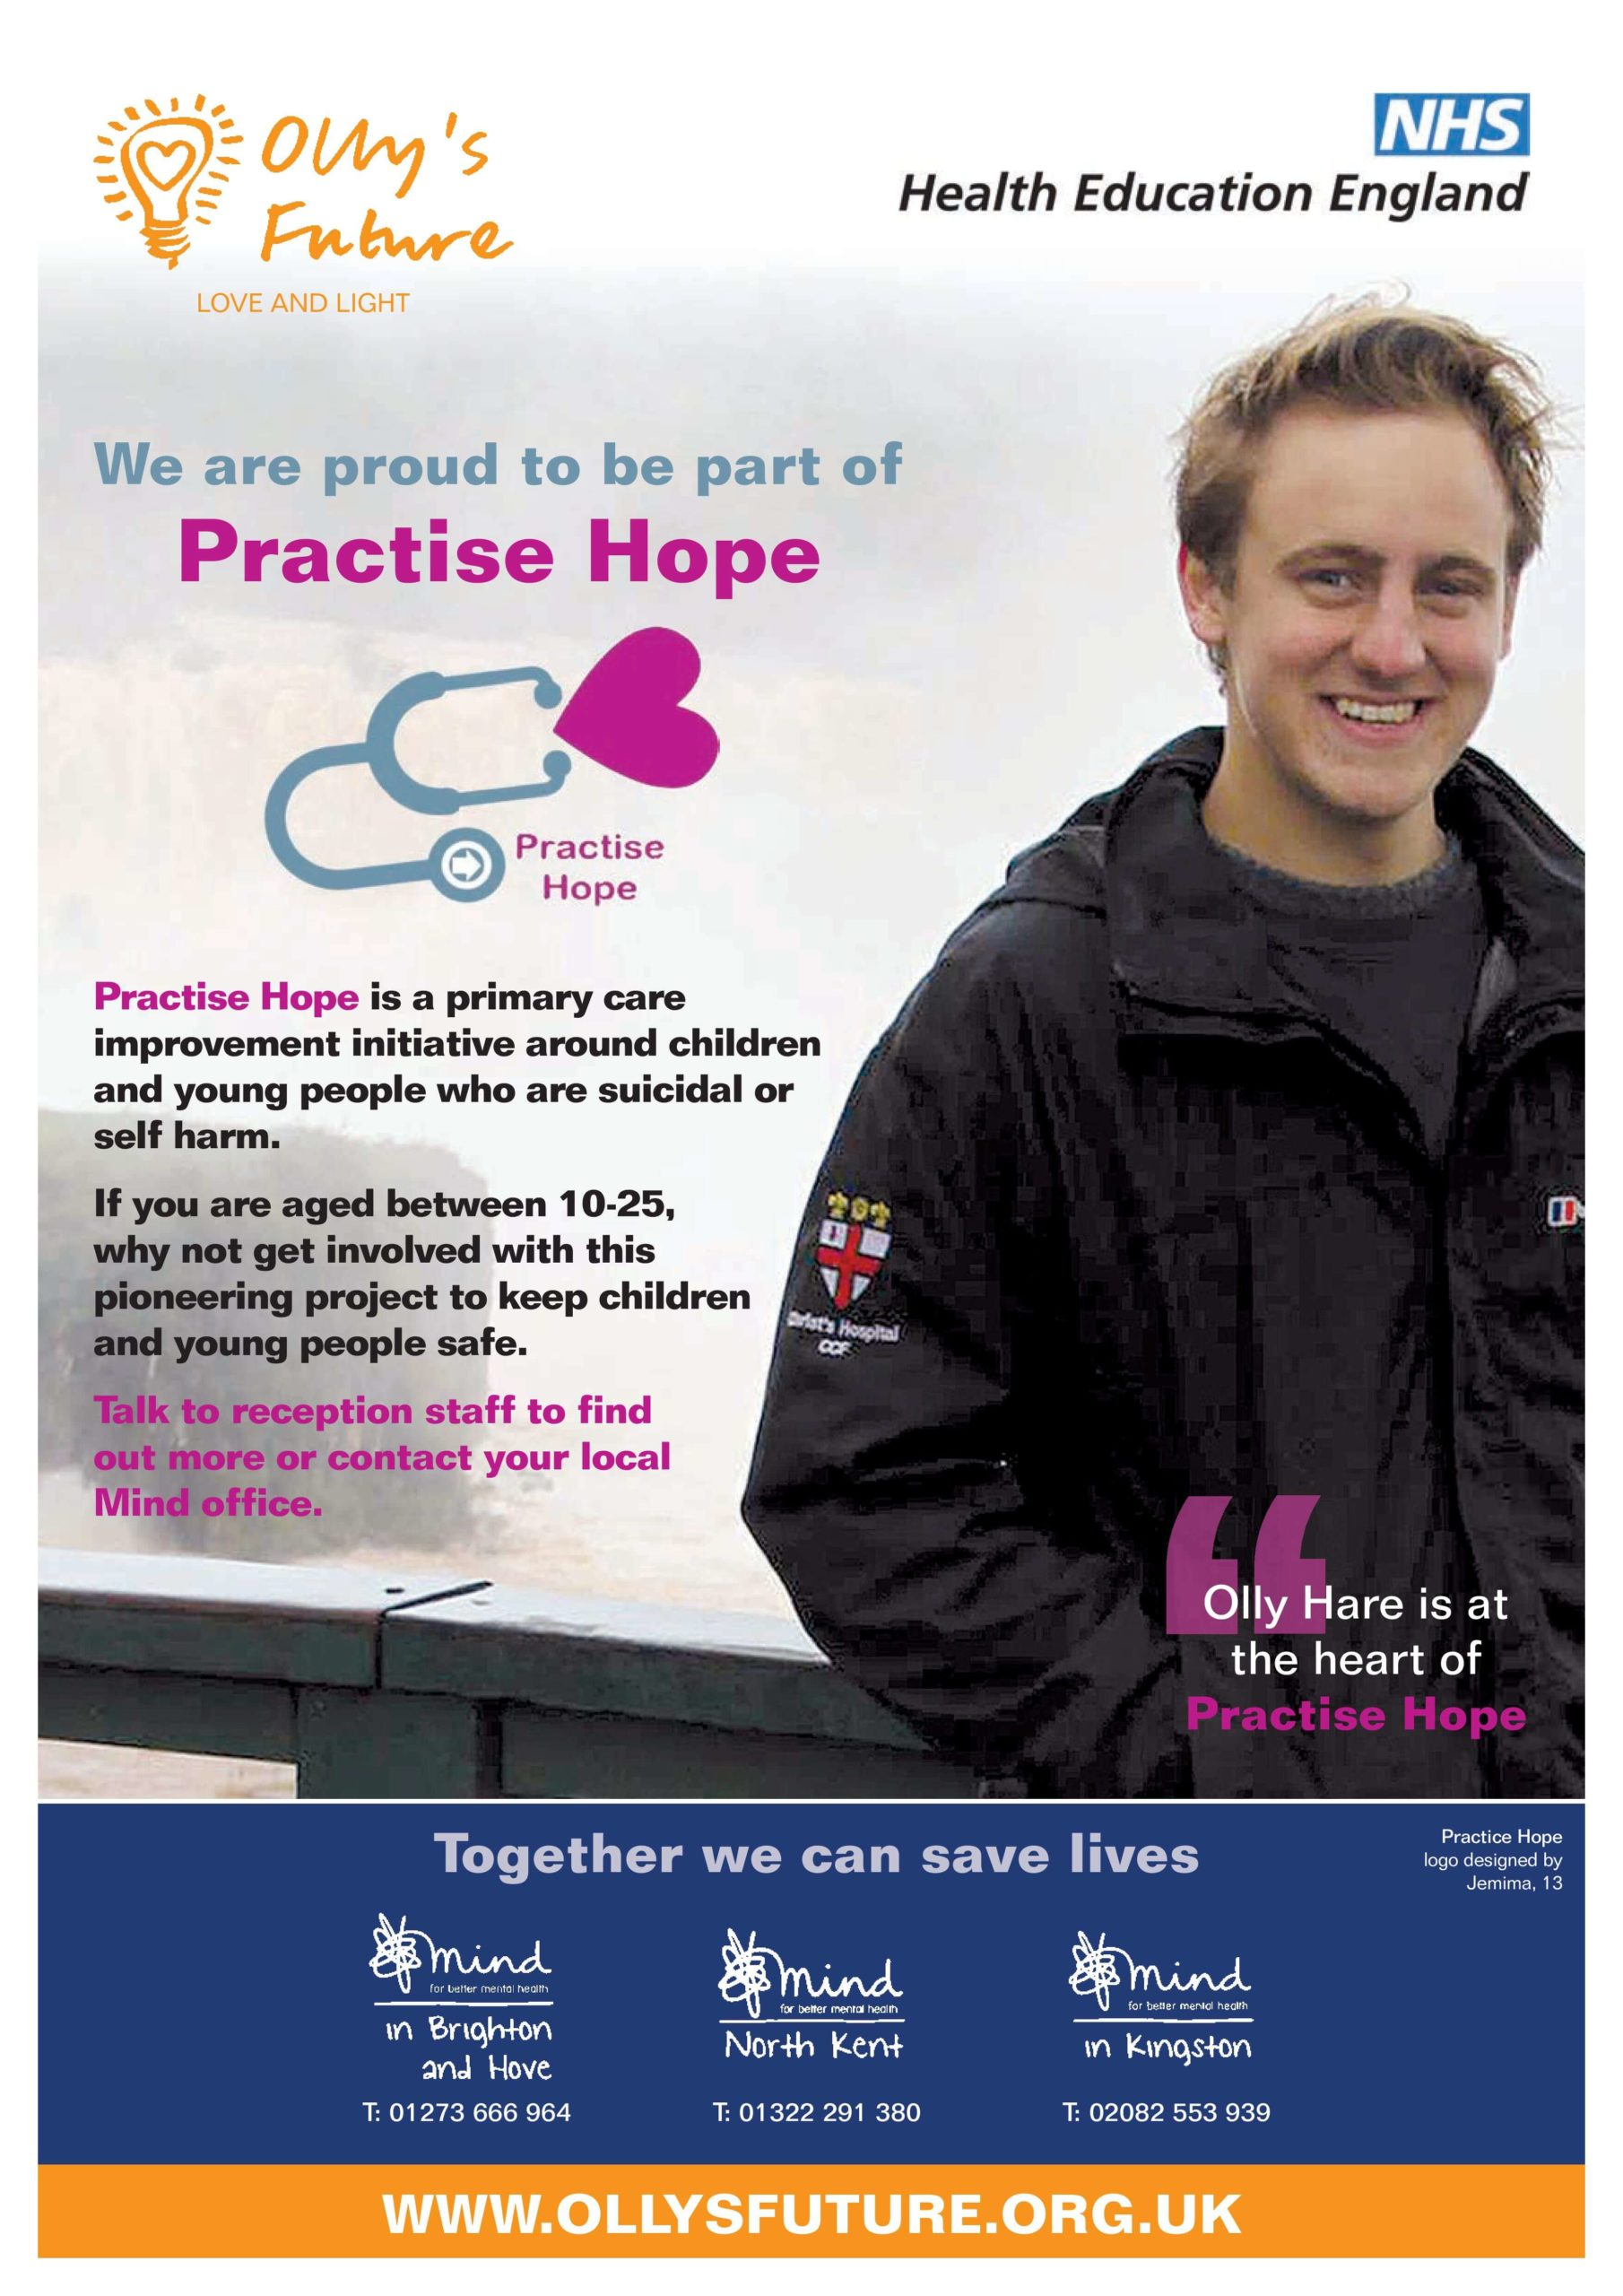 ollys-future-practise-hope-poster